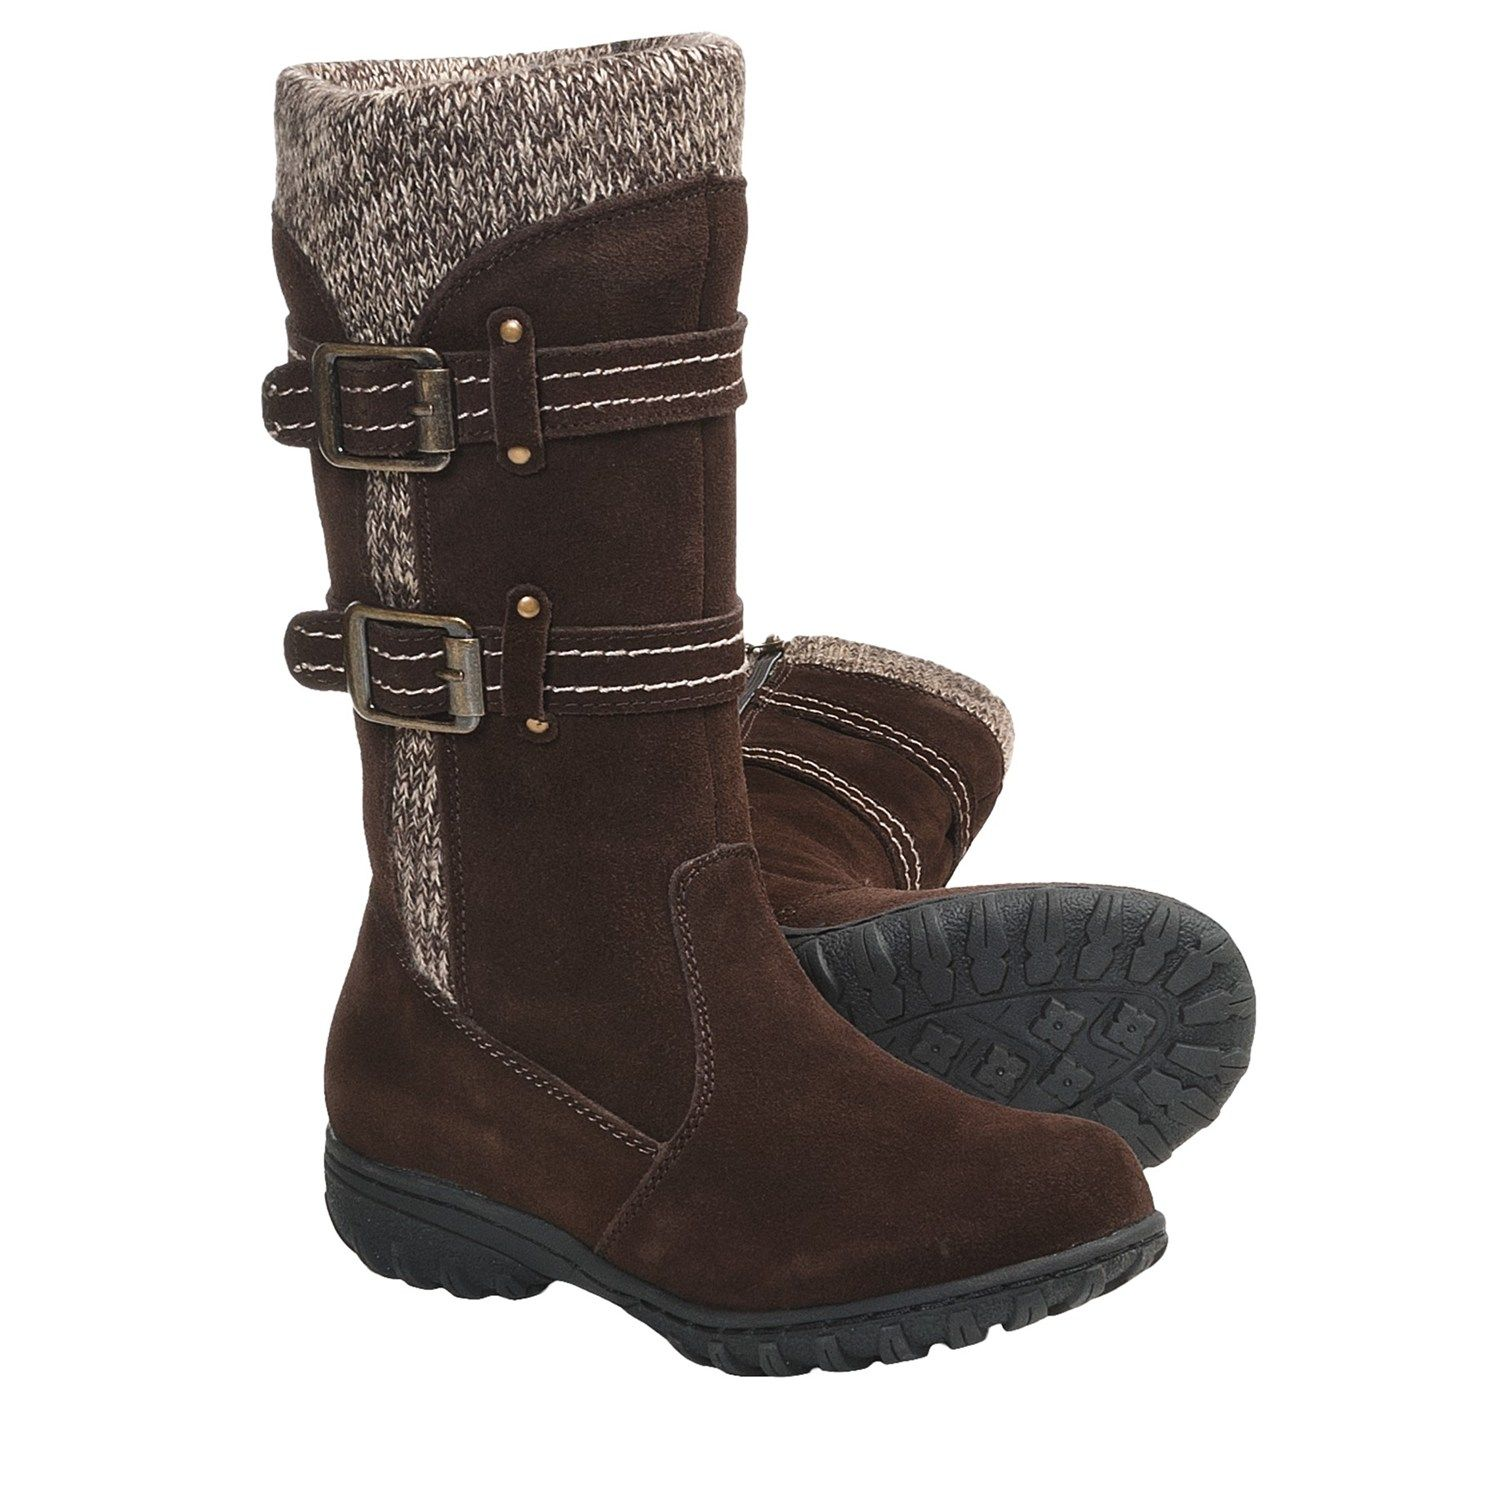 Khombu Boulder Sweater Boots - Suede, Insulated (For Women) in Brown $52.81